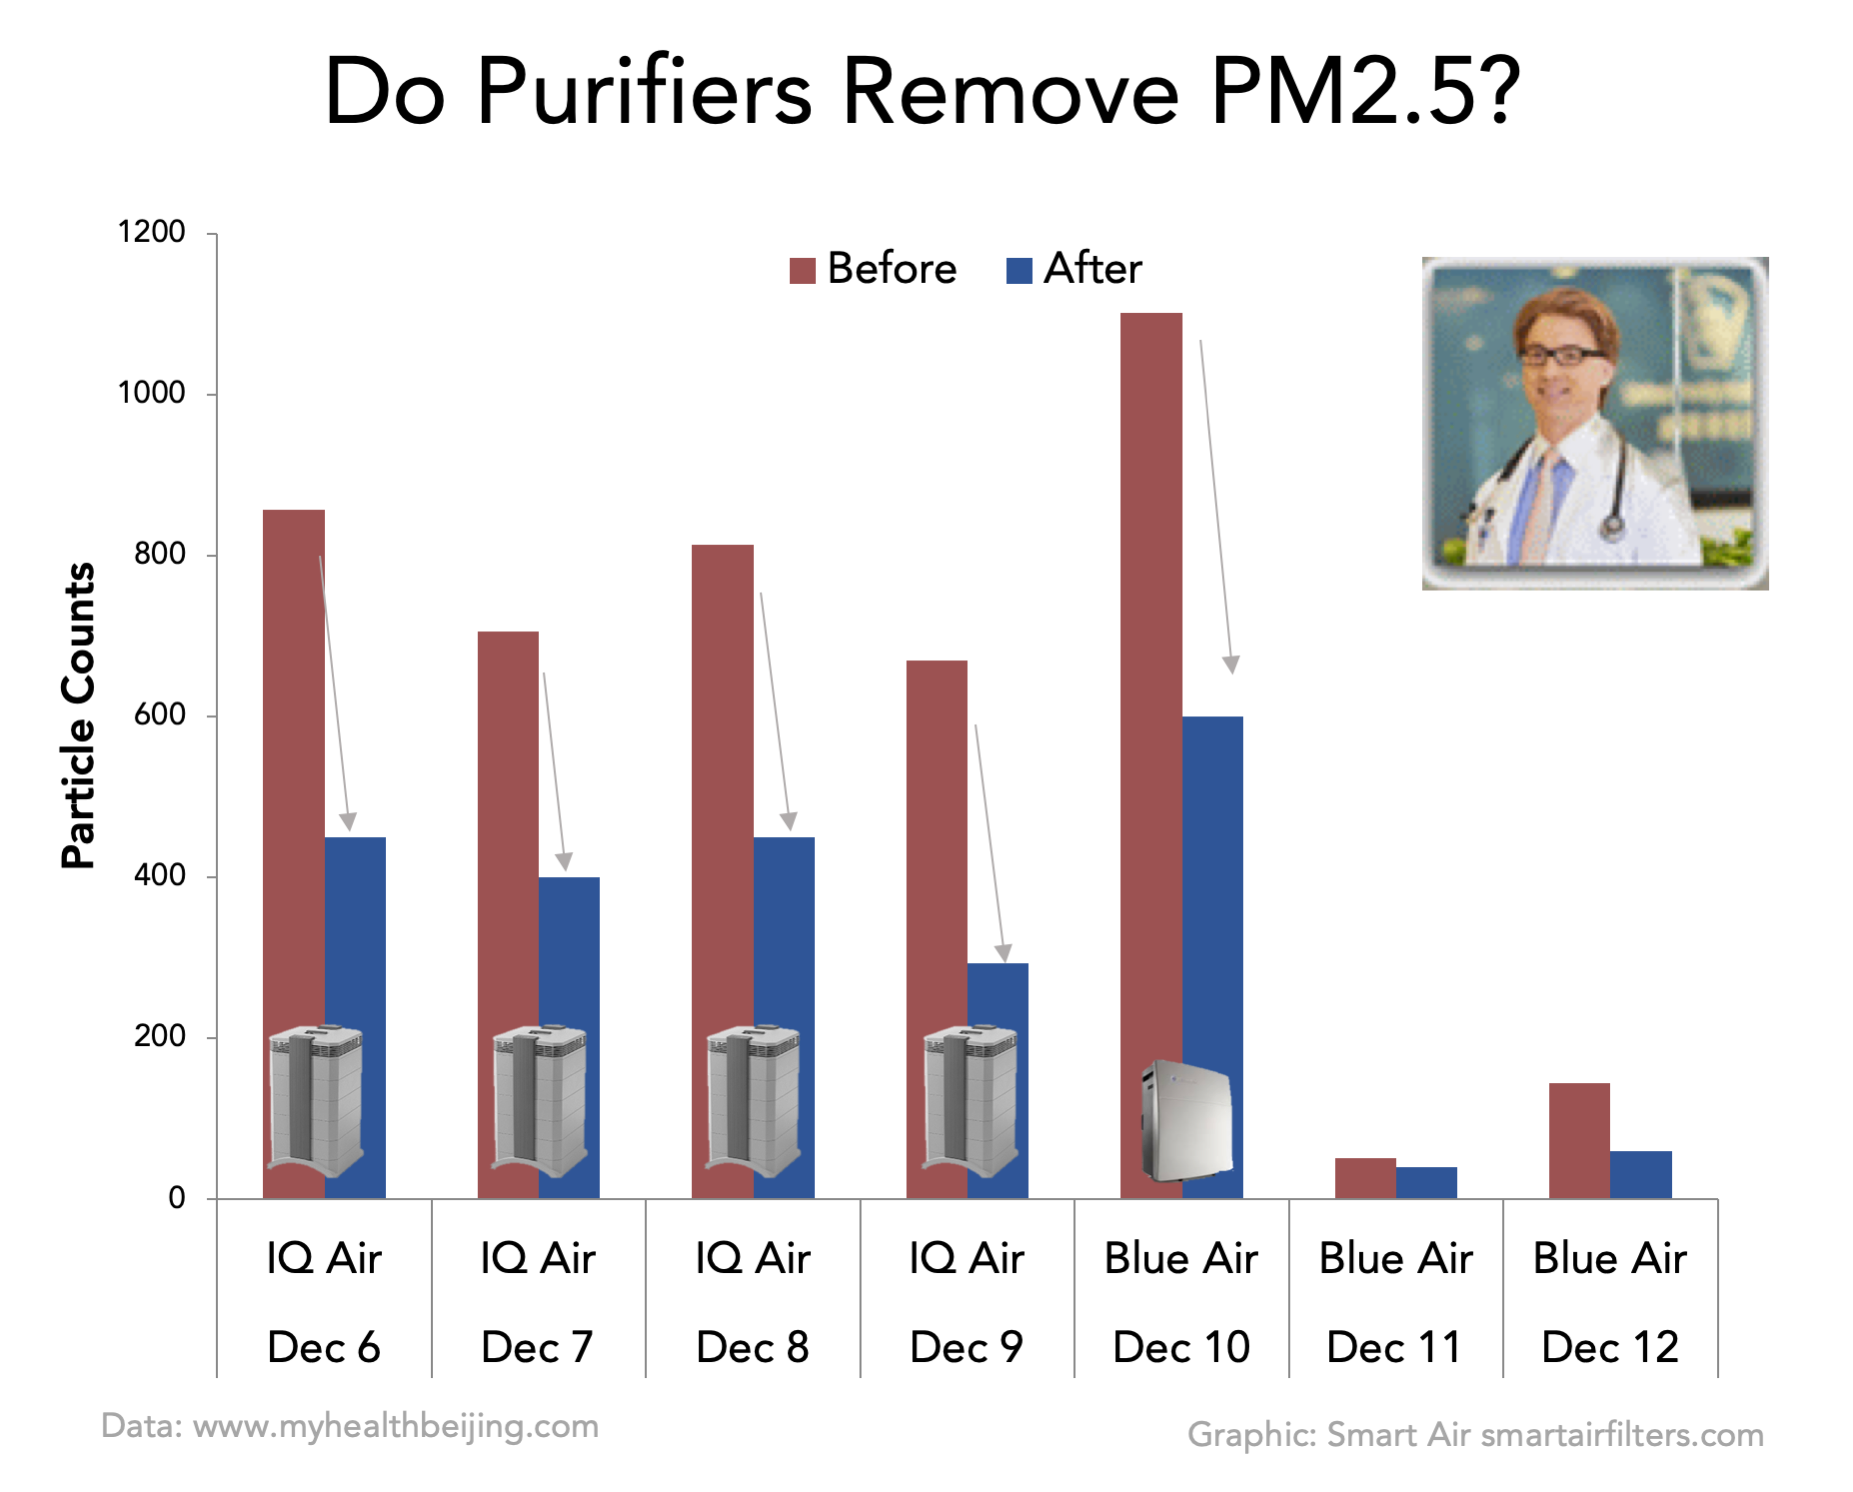 Do purifiers remove PM2.5 test data